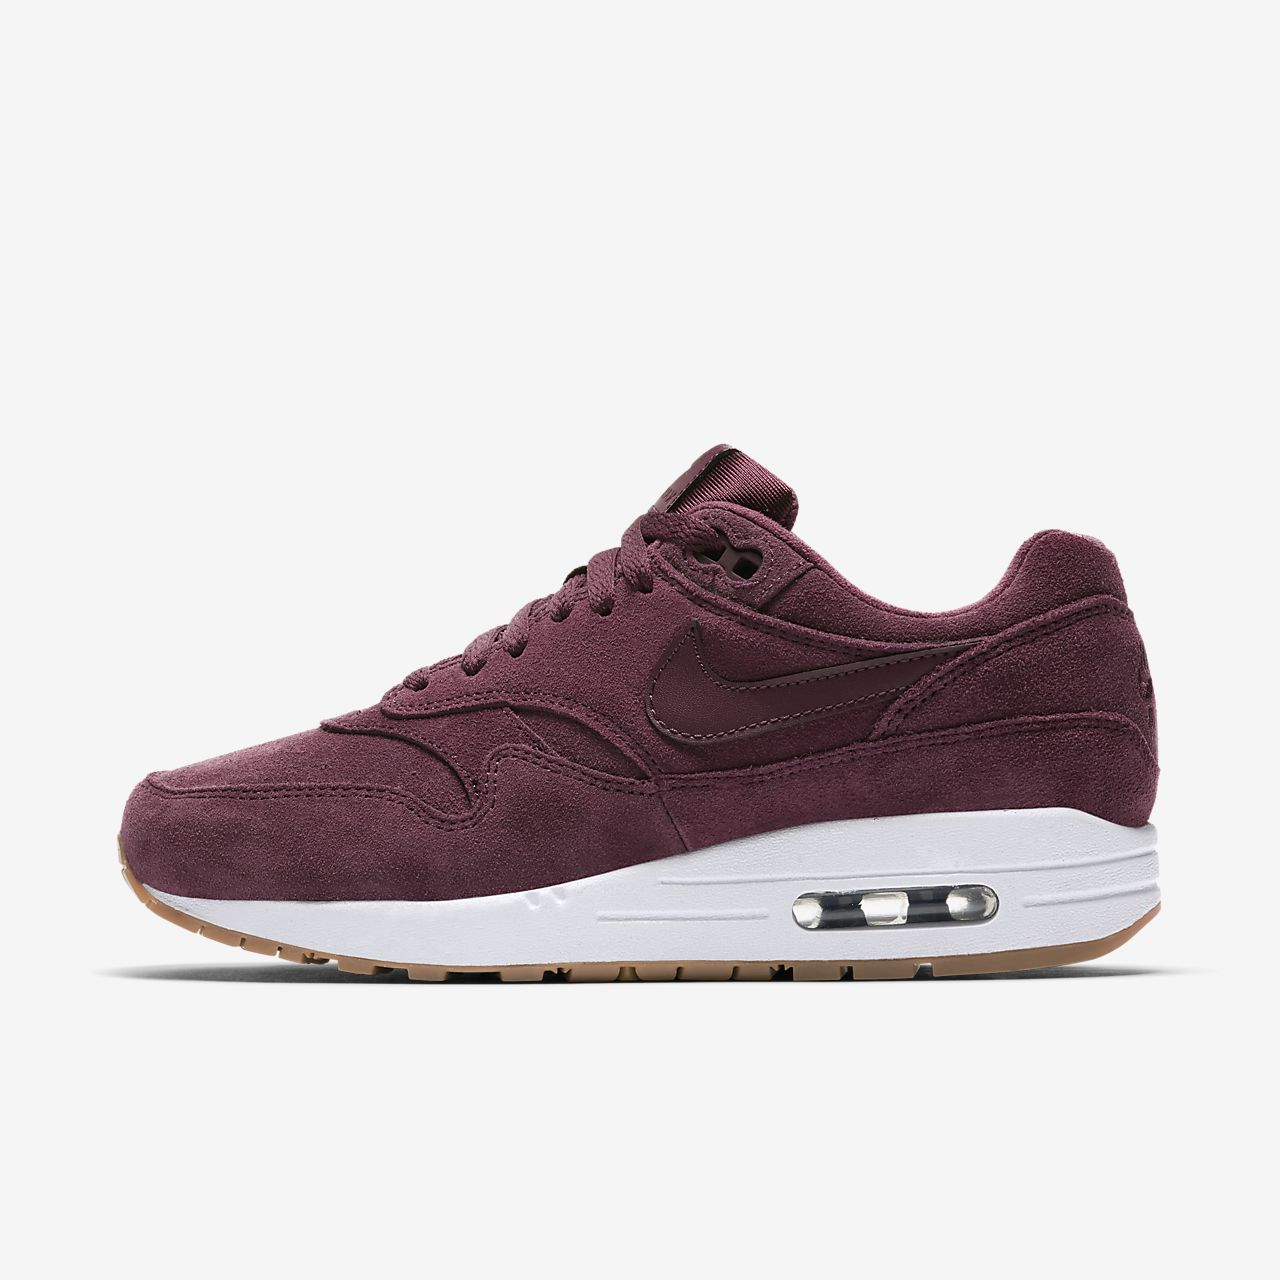 designer fashion a9458 86879 Buty damskie Nike Air Max 1 SE